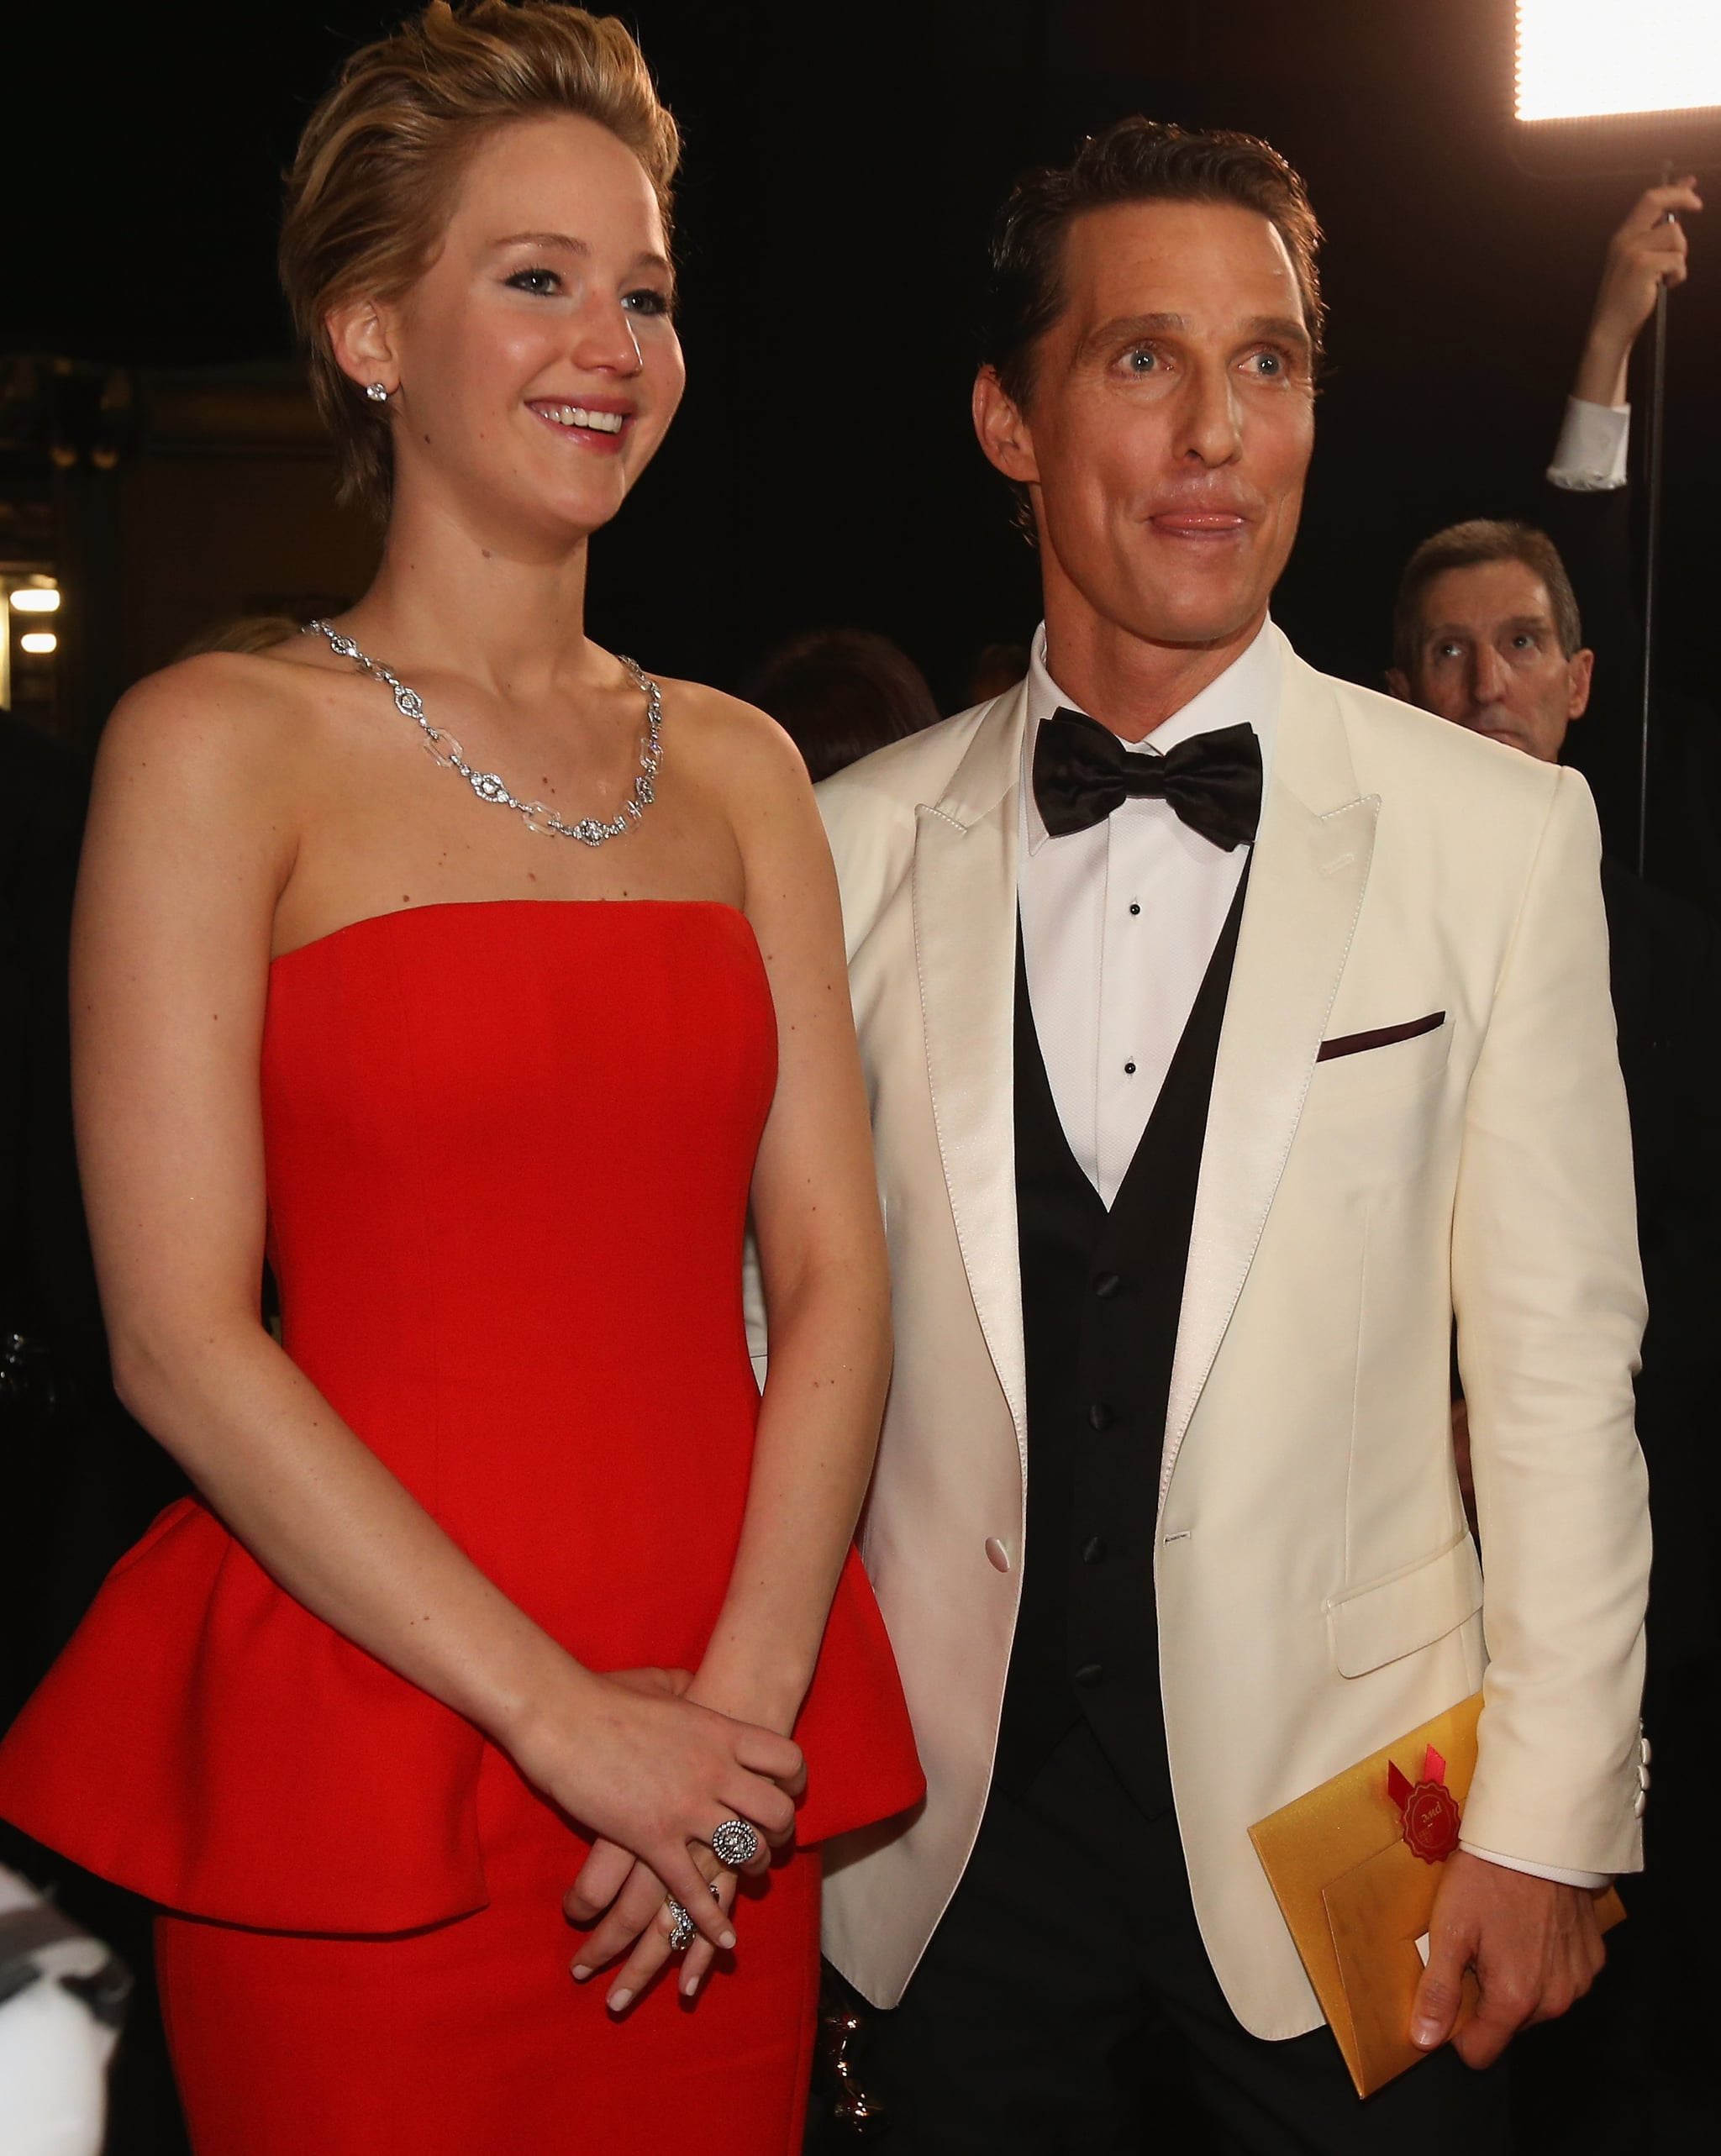 Jennifer Lawrence posed with Matthew McConaughey backstage after presenting him with best actor.